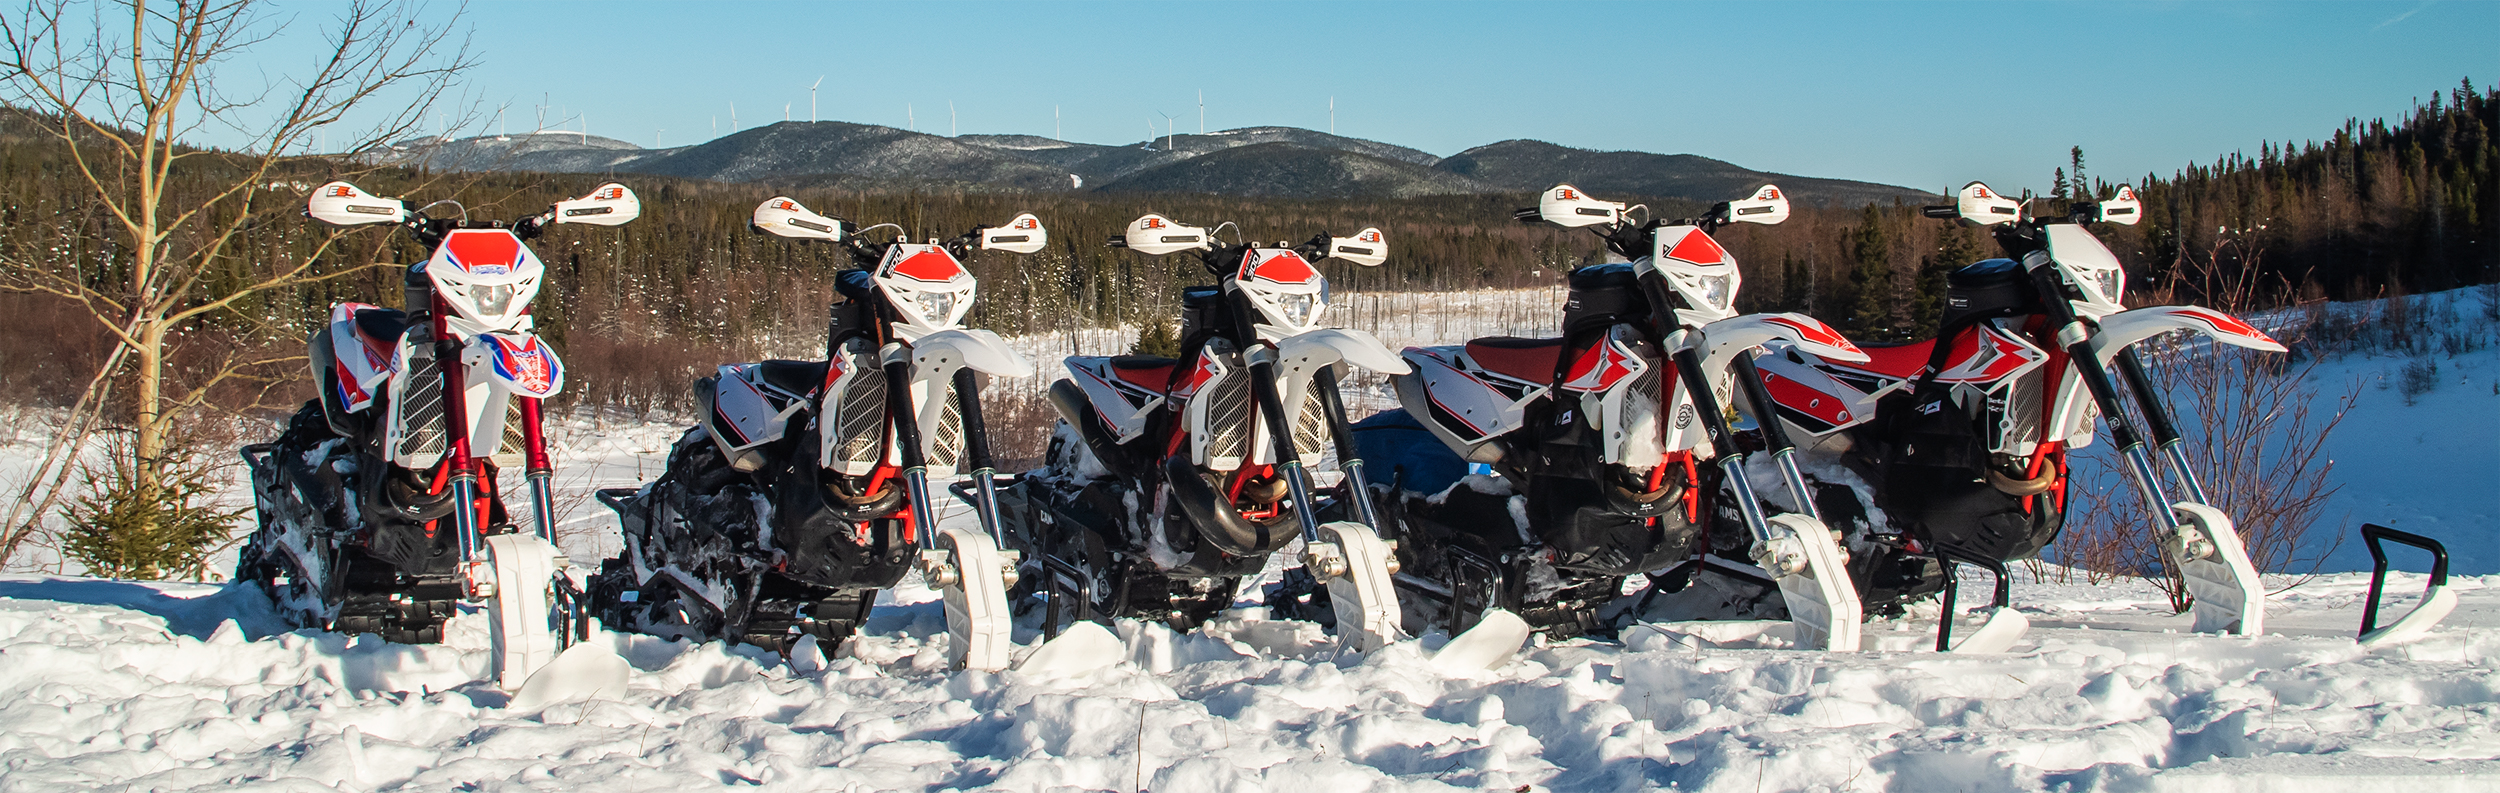 Snow Bikes lined up for duty